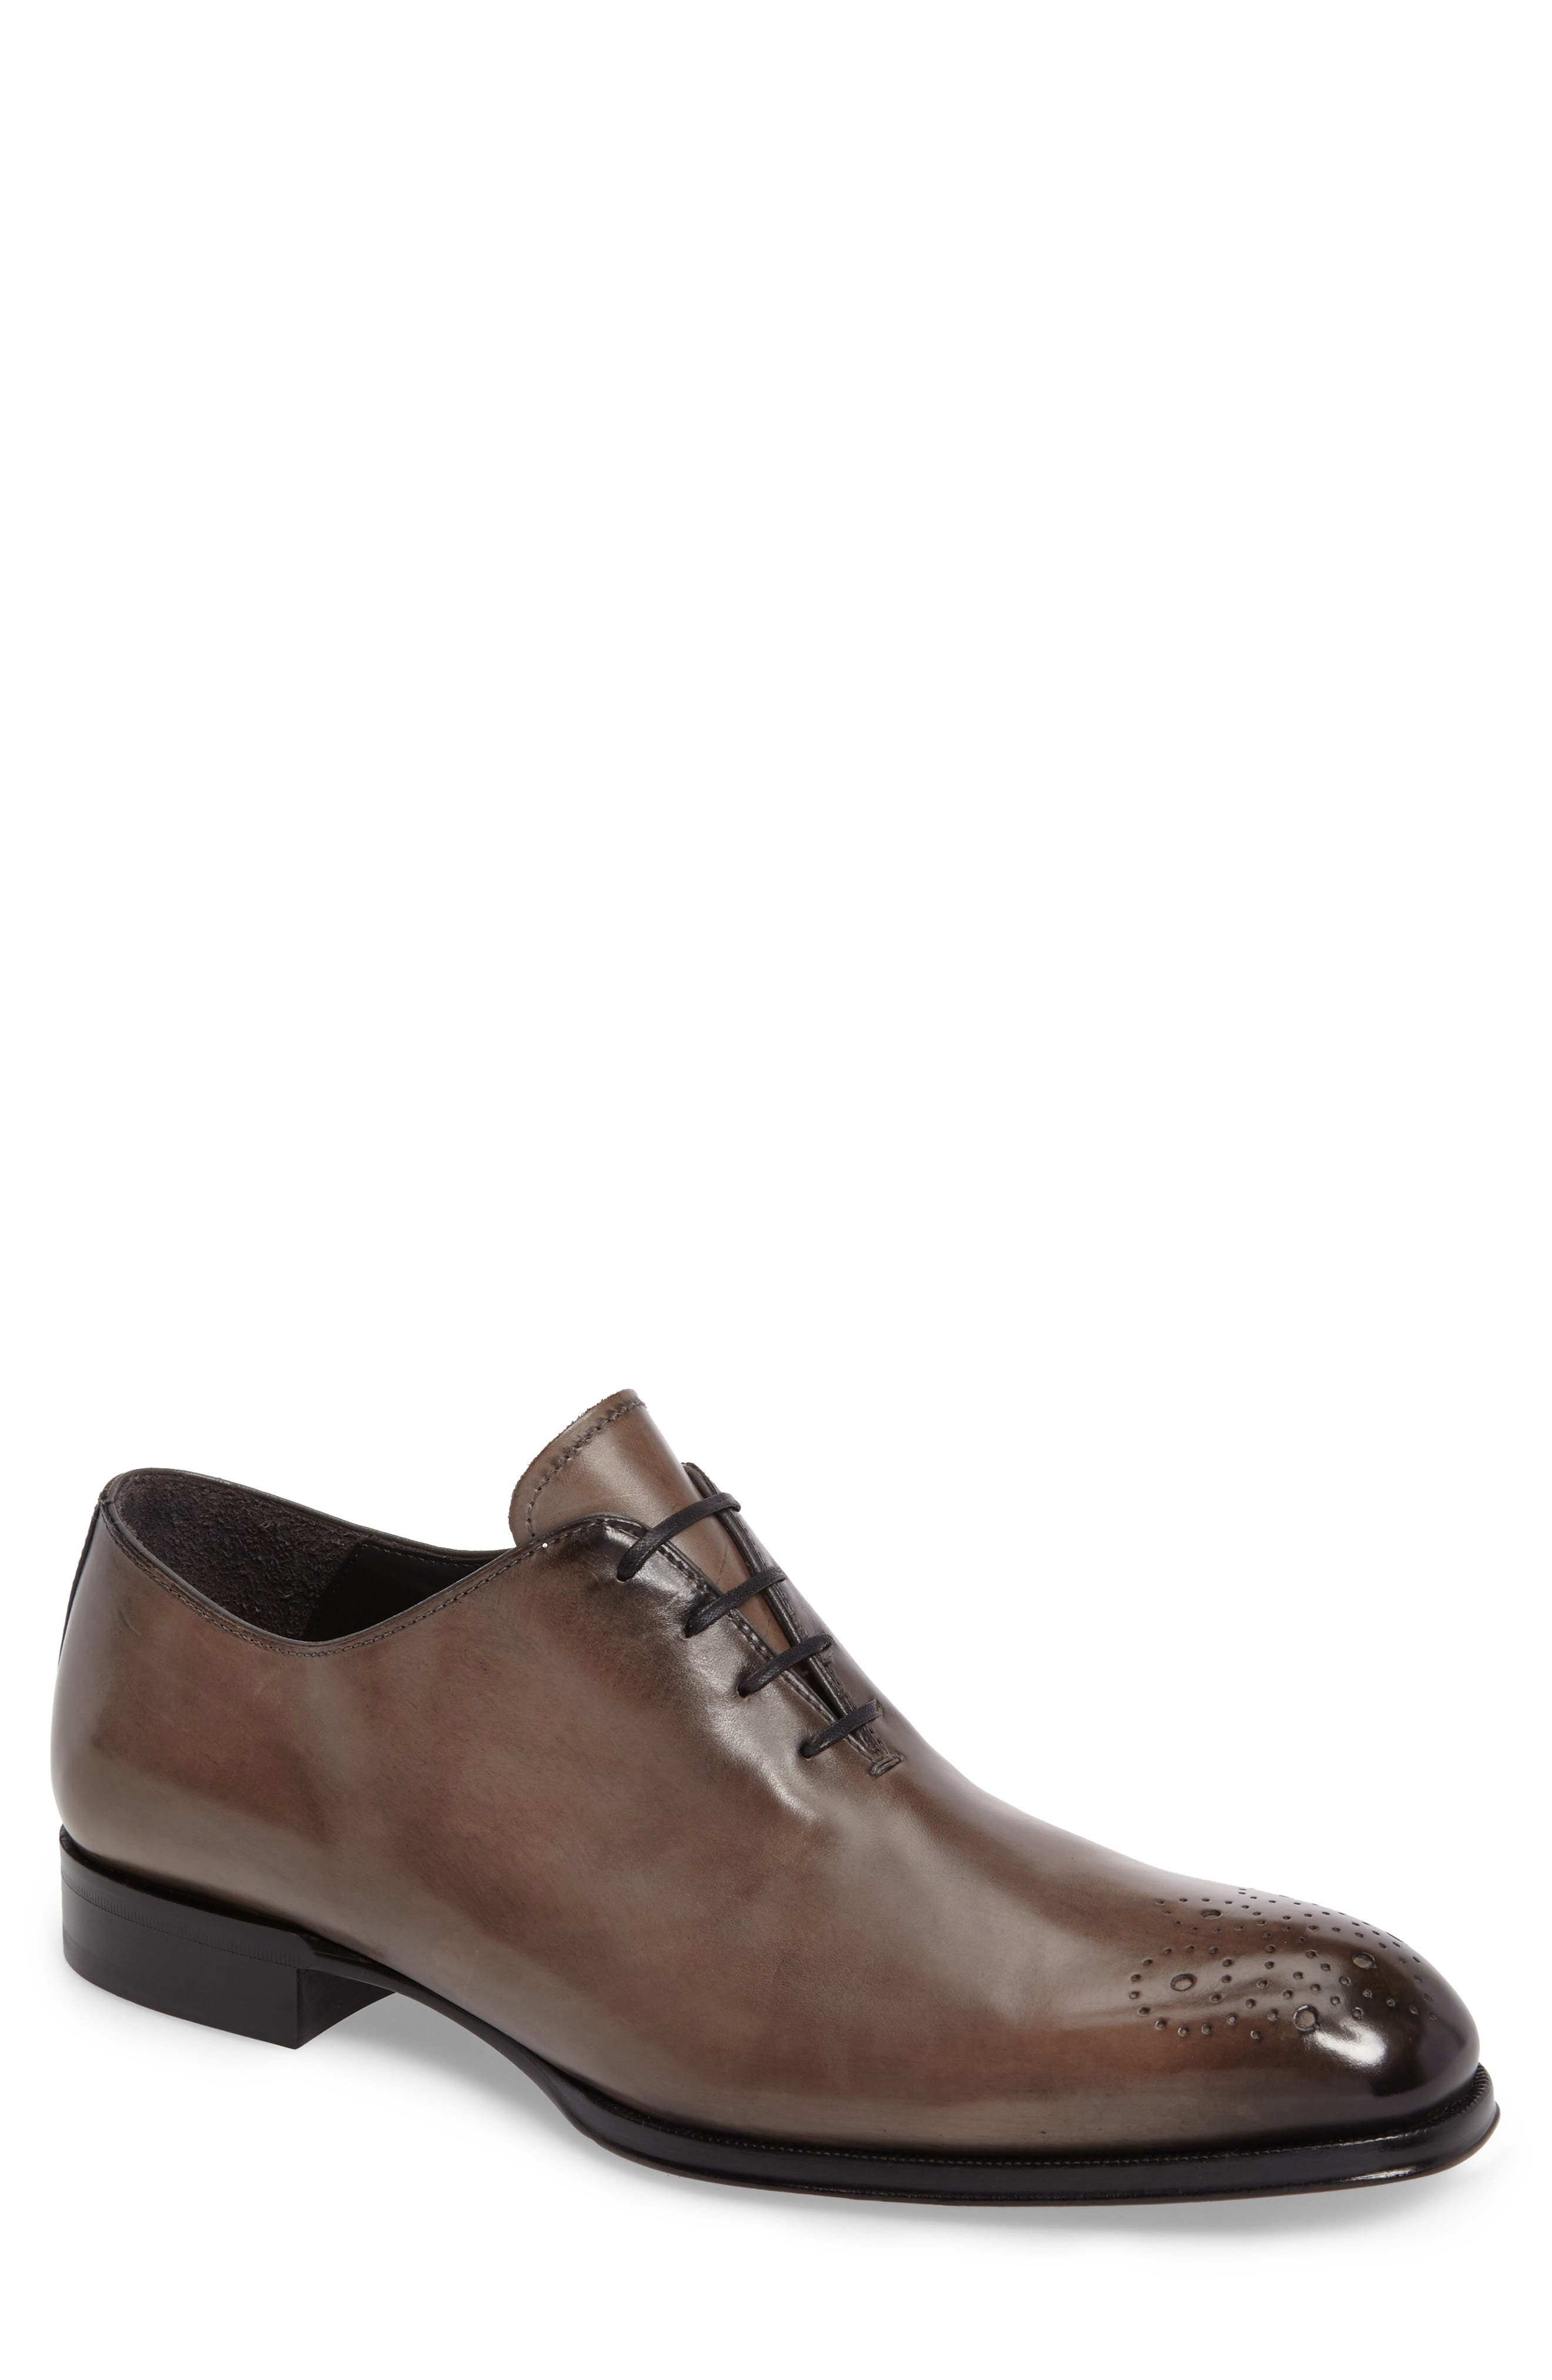 Bateman Brogue Oxford,                         Main,                         color, 024